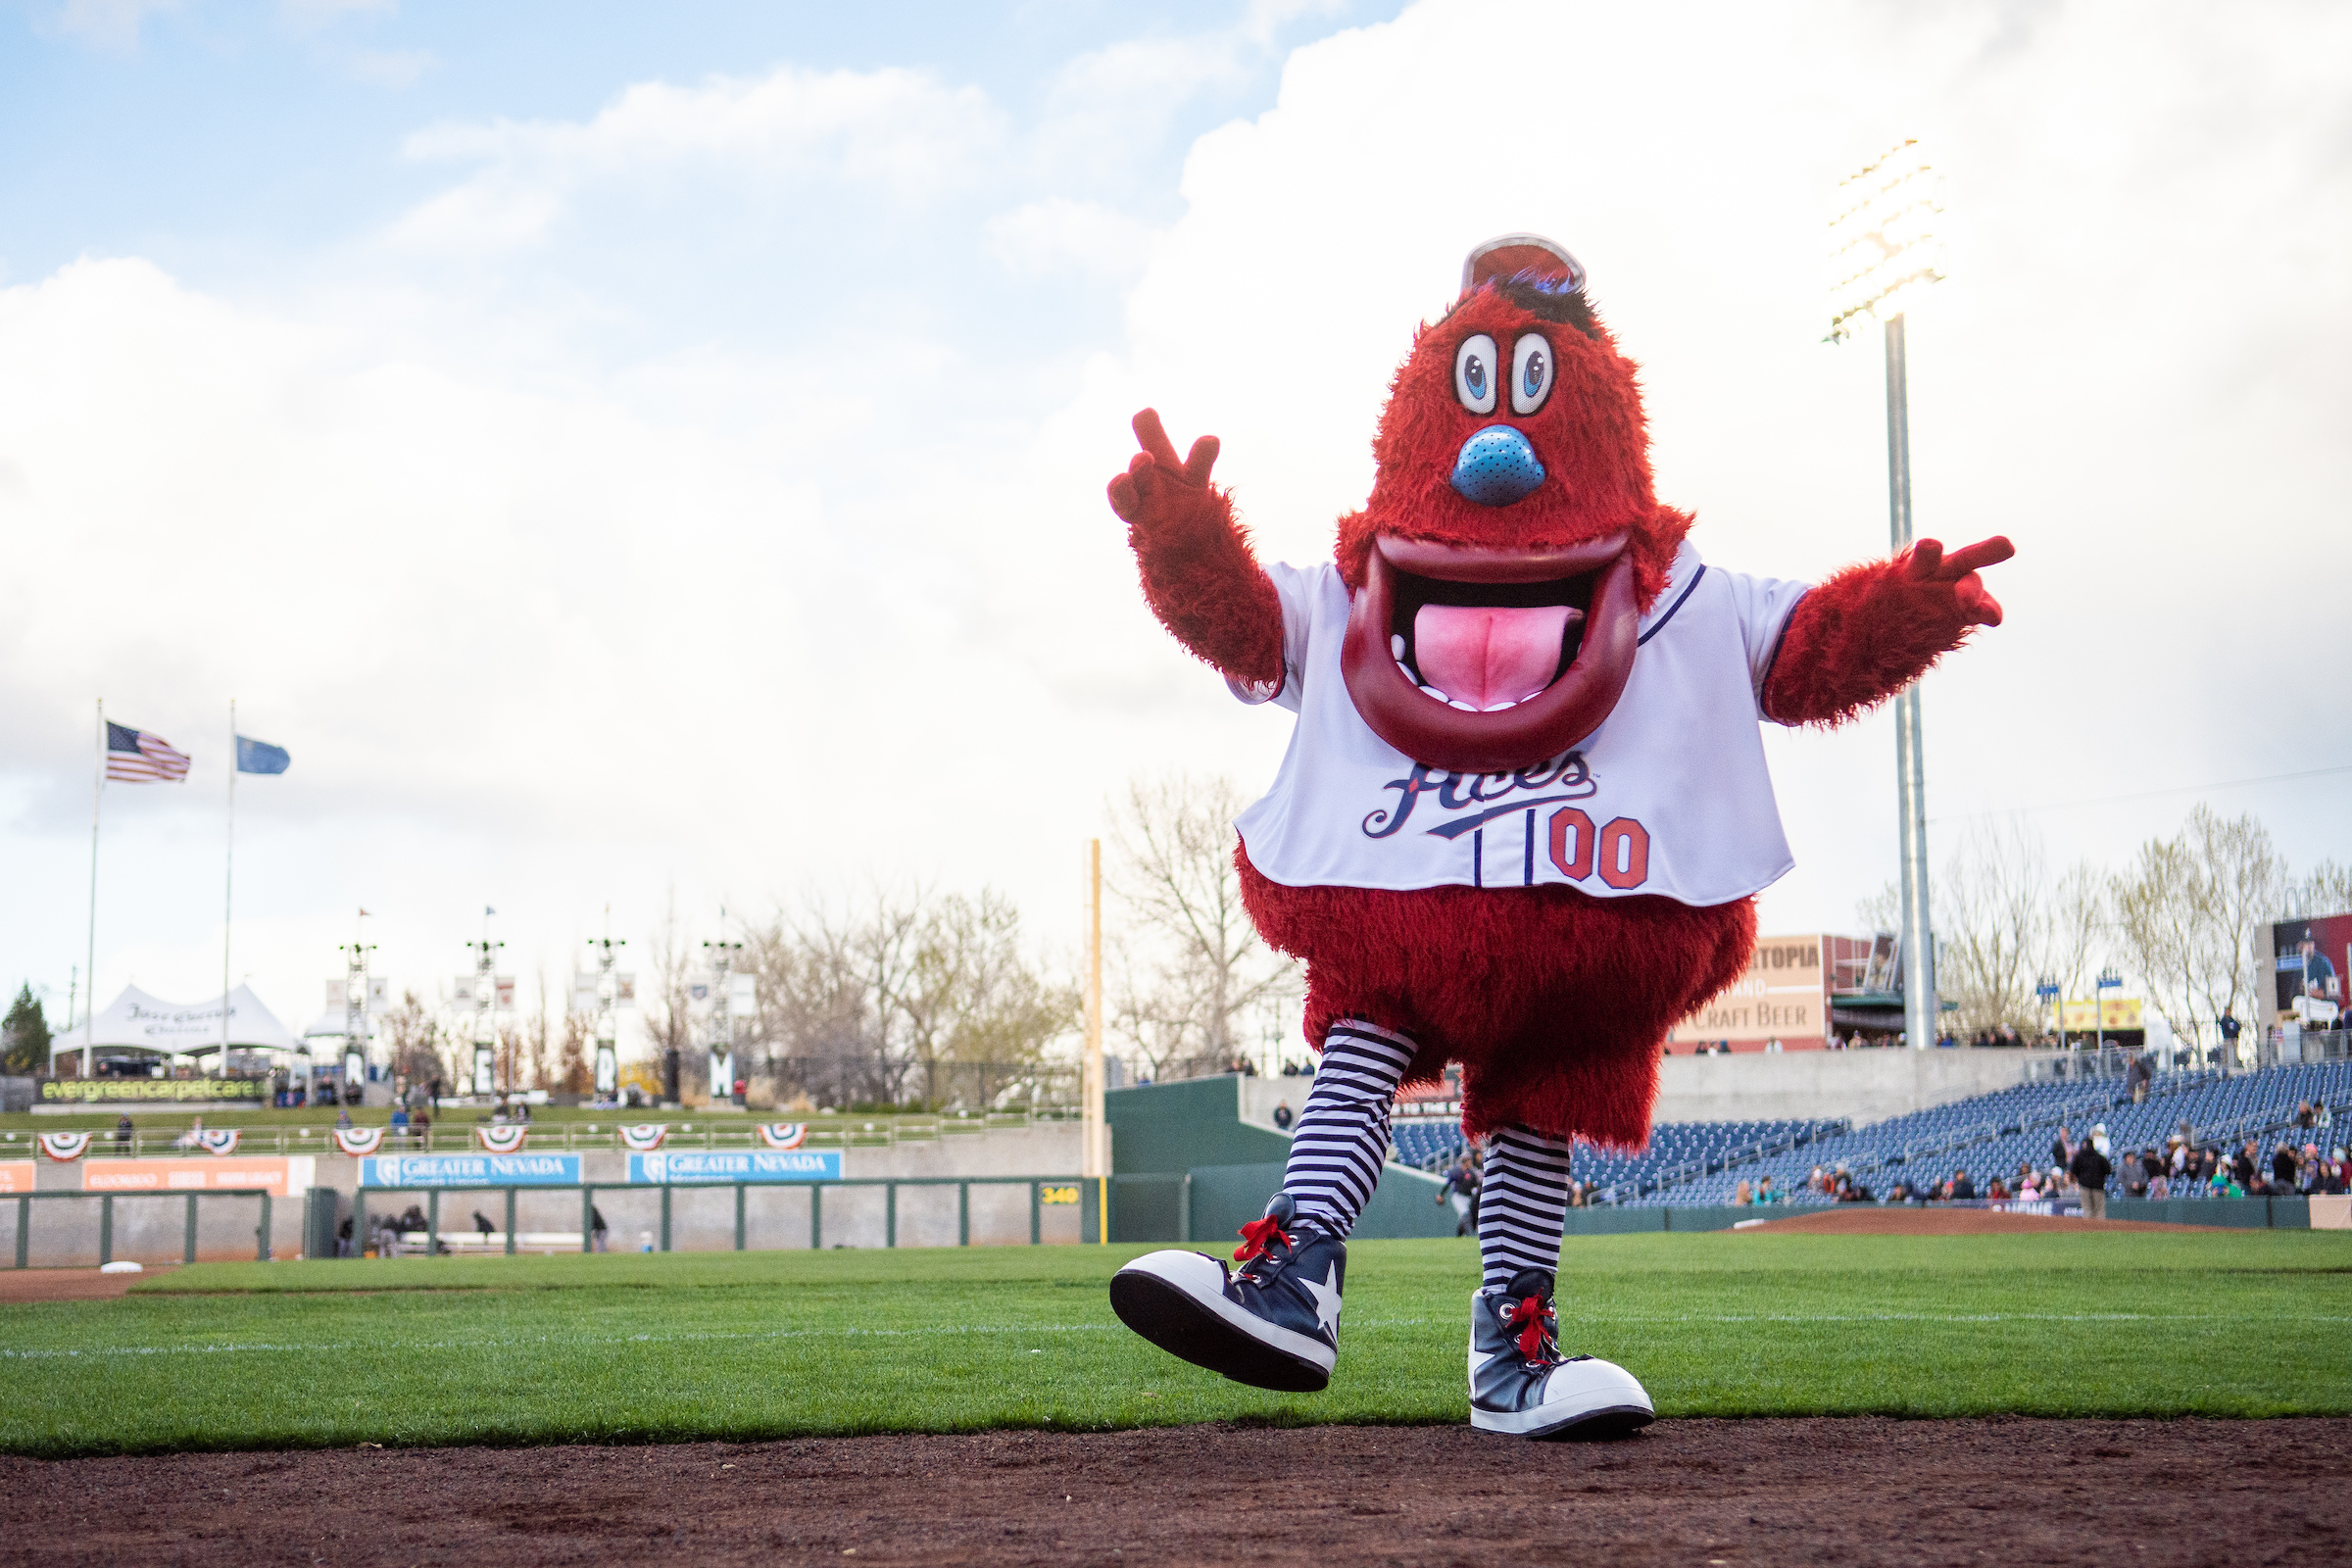 Archie, the Reno Ace's mascot on the team's home field.